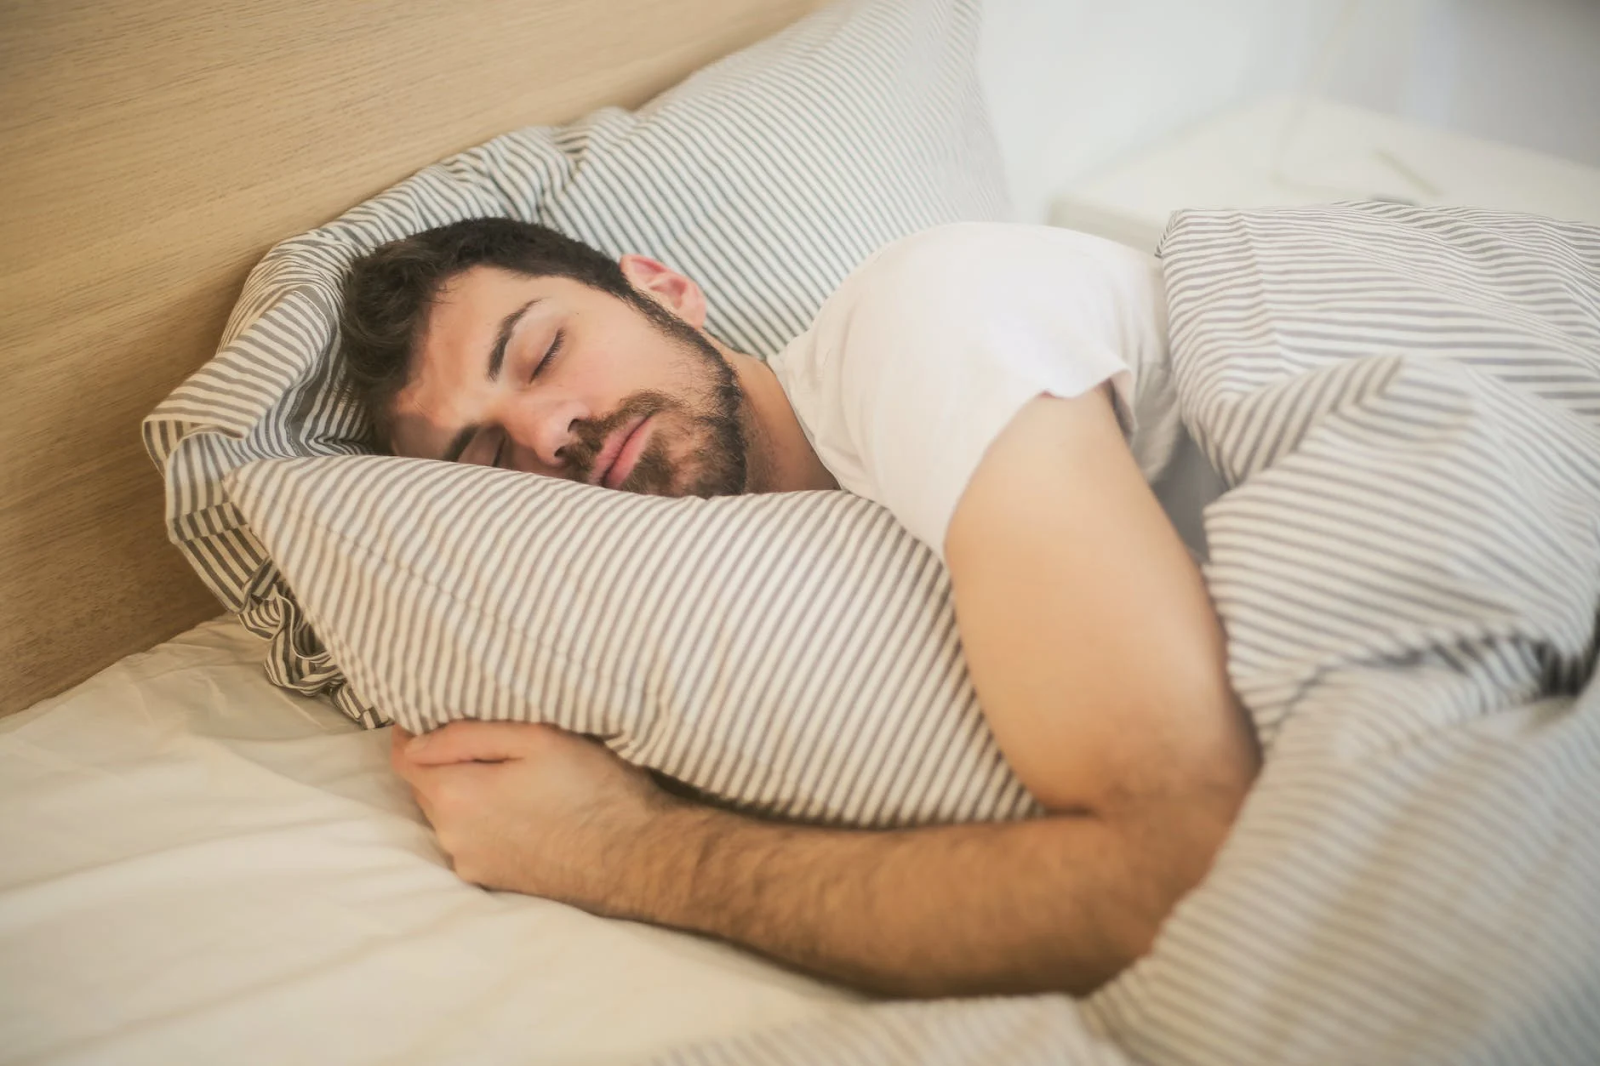 A man sleeps soundly in bed while hugging a pillow